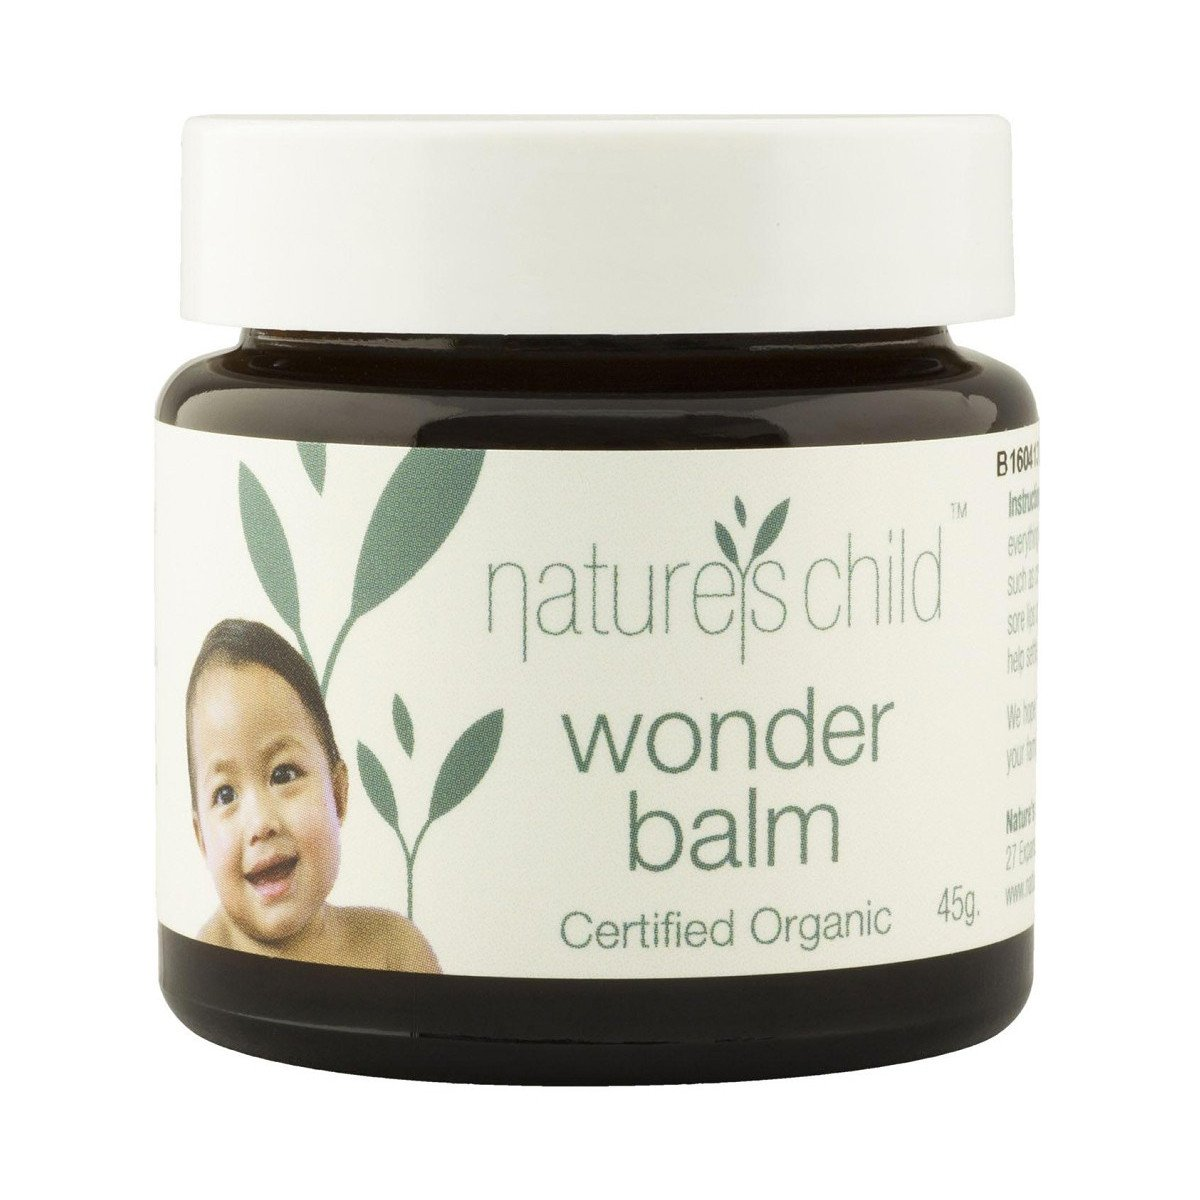 Natures Child Wonder Balm 45g Natures Child Nappy Rash Treatments at Little Earth Nest Eco Shop